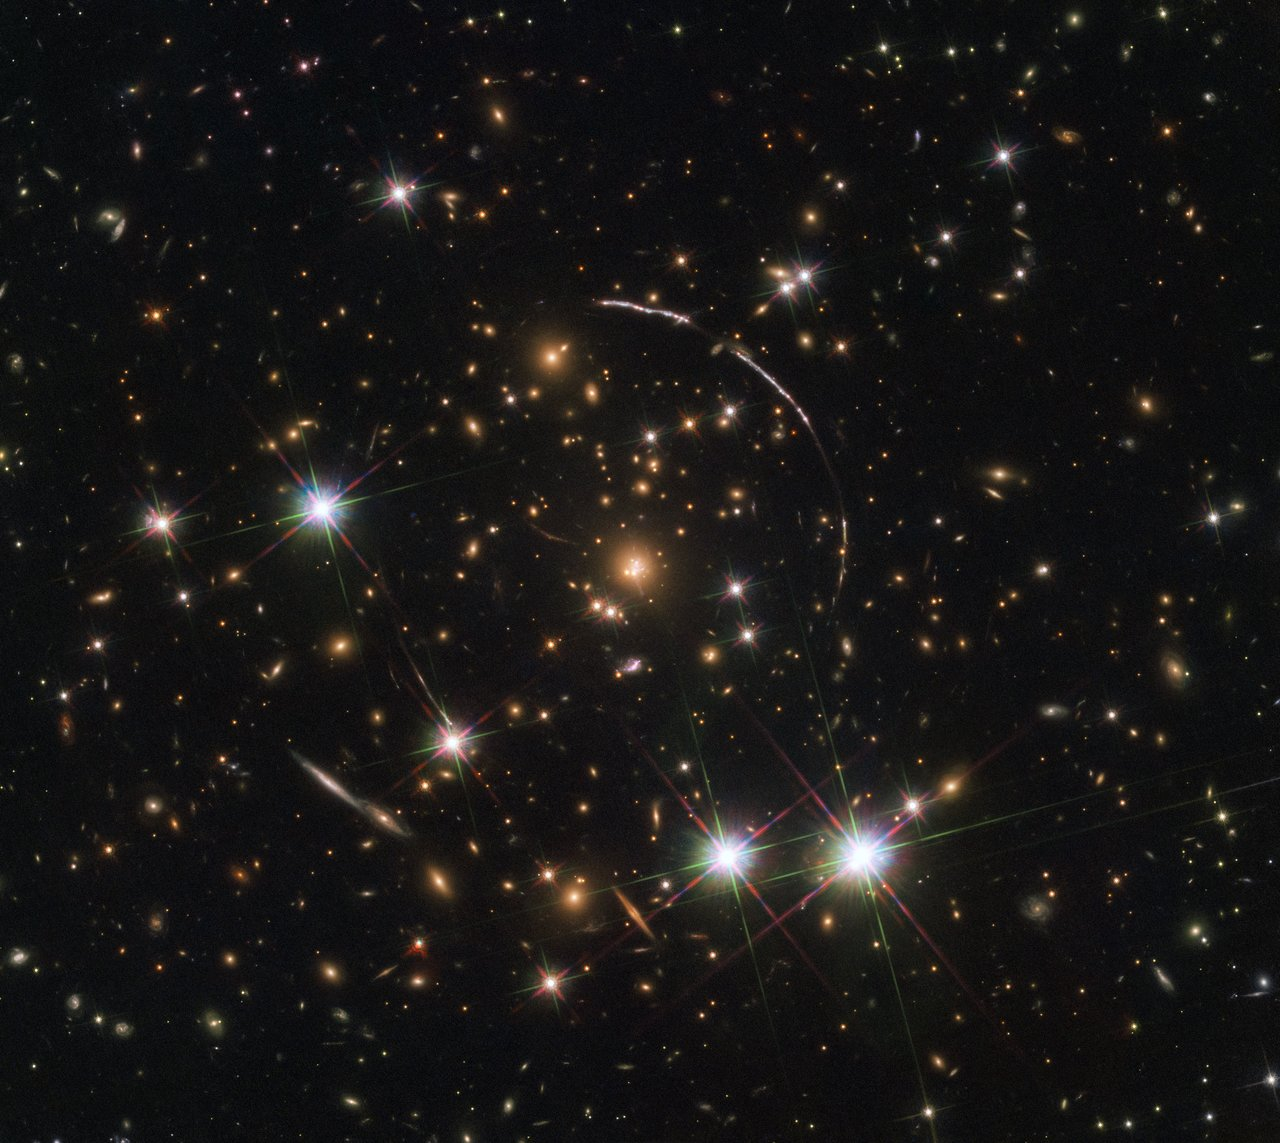 Photo Release: Hubble Captures a Dozen Sunburst Arc Doppelgangers